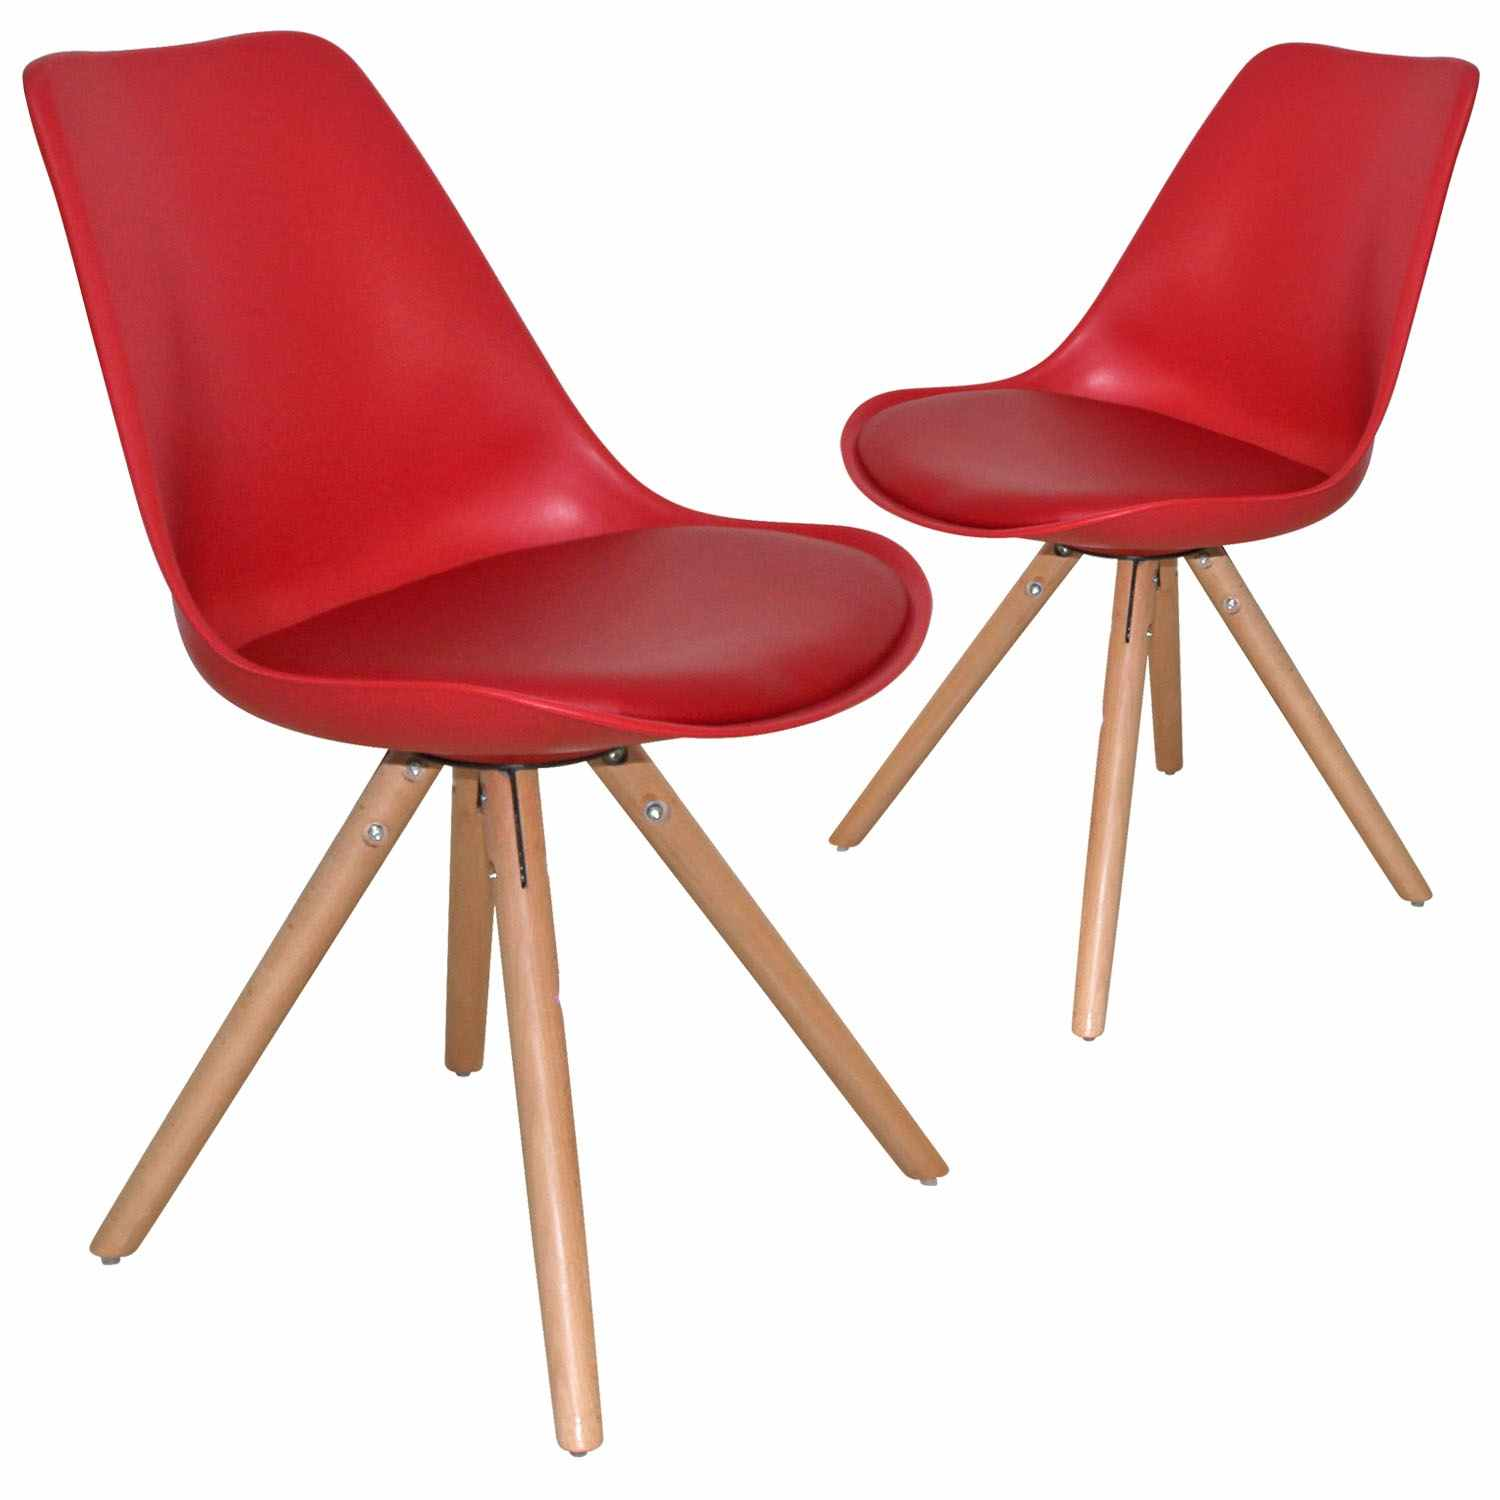 deco in paris 6 lot de 2 chaises design rouge velta velta rouge x2. Black Bedroom Furniture Sets. Home Design Ideas